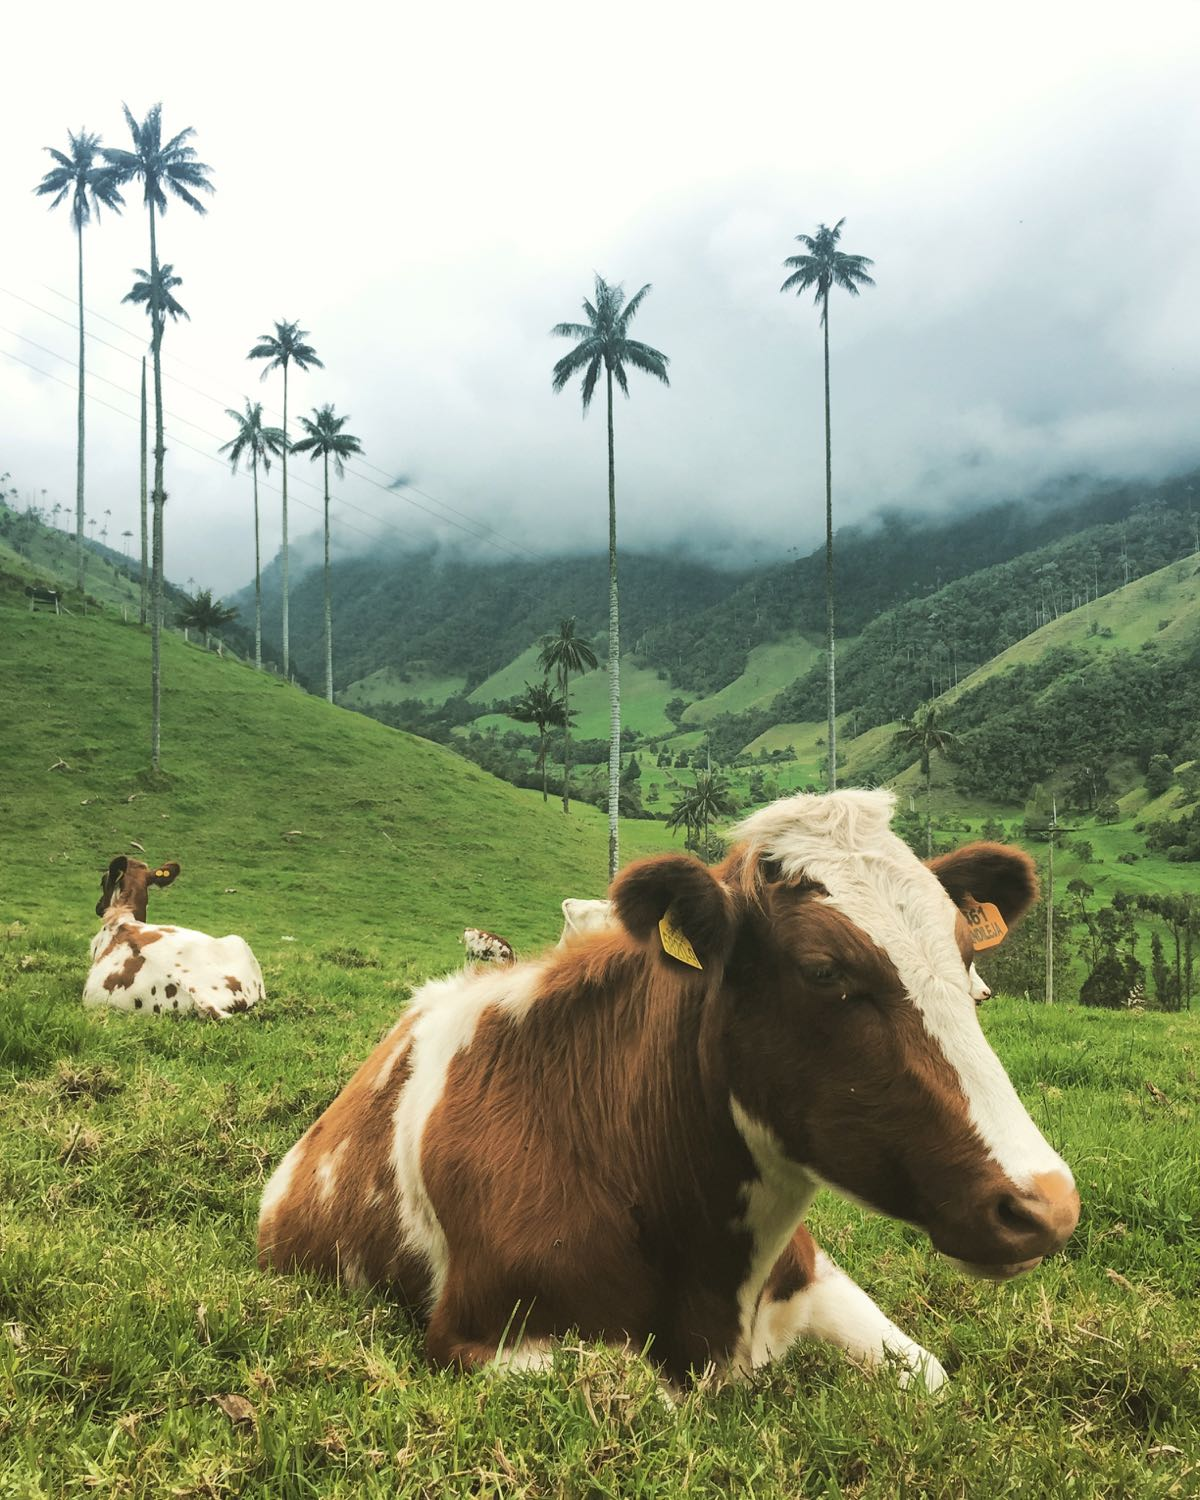 Cows are happy in the mountains